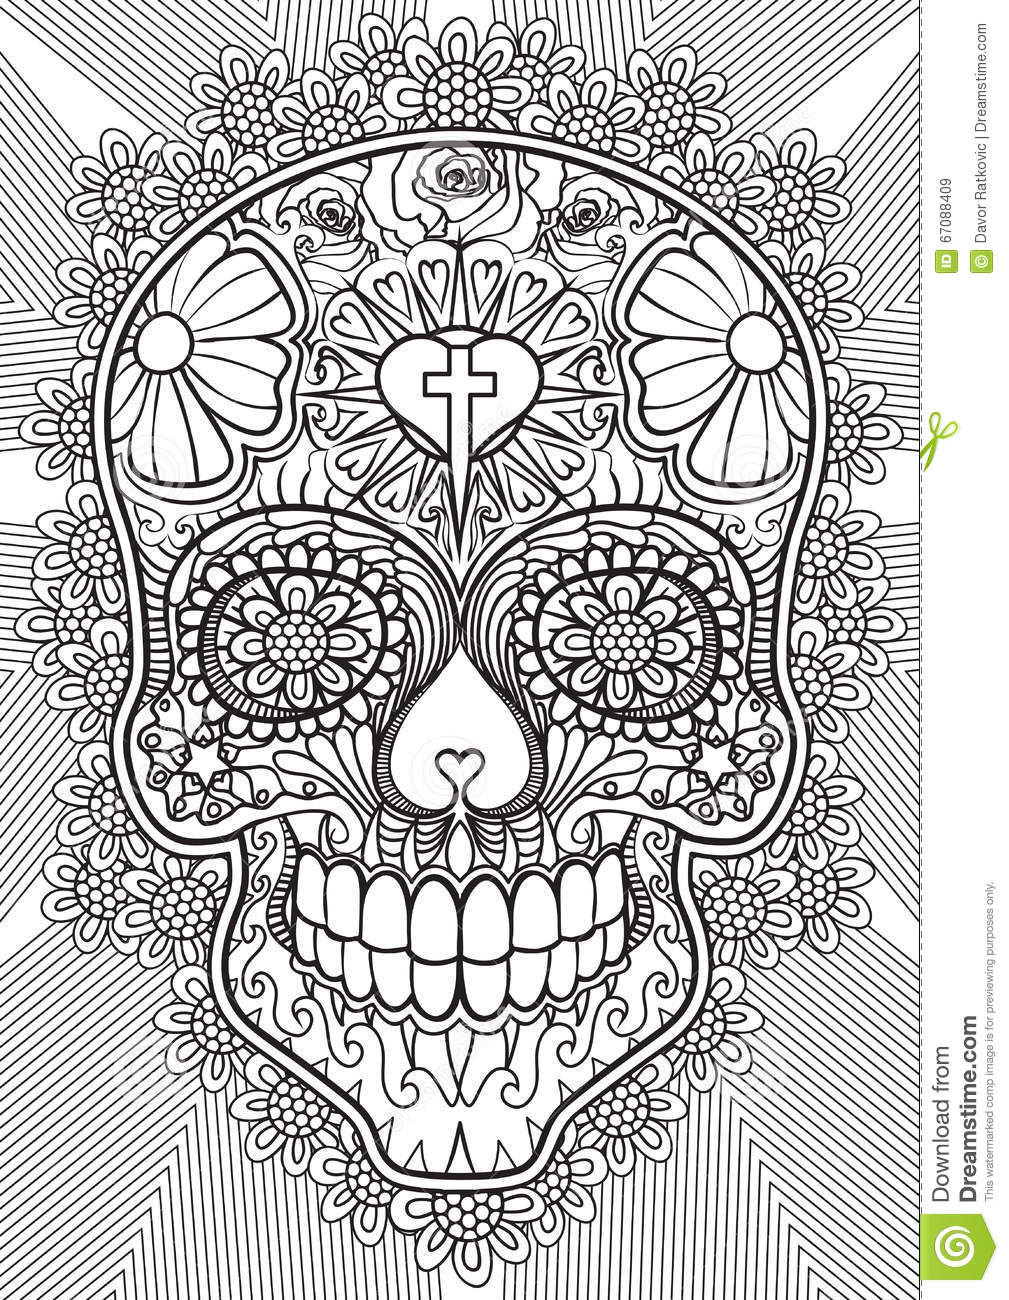 Skull - Day of the dead